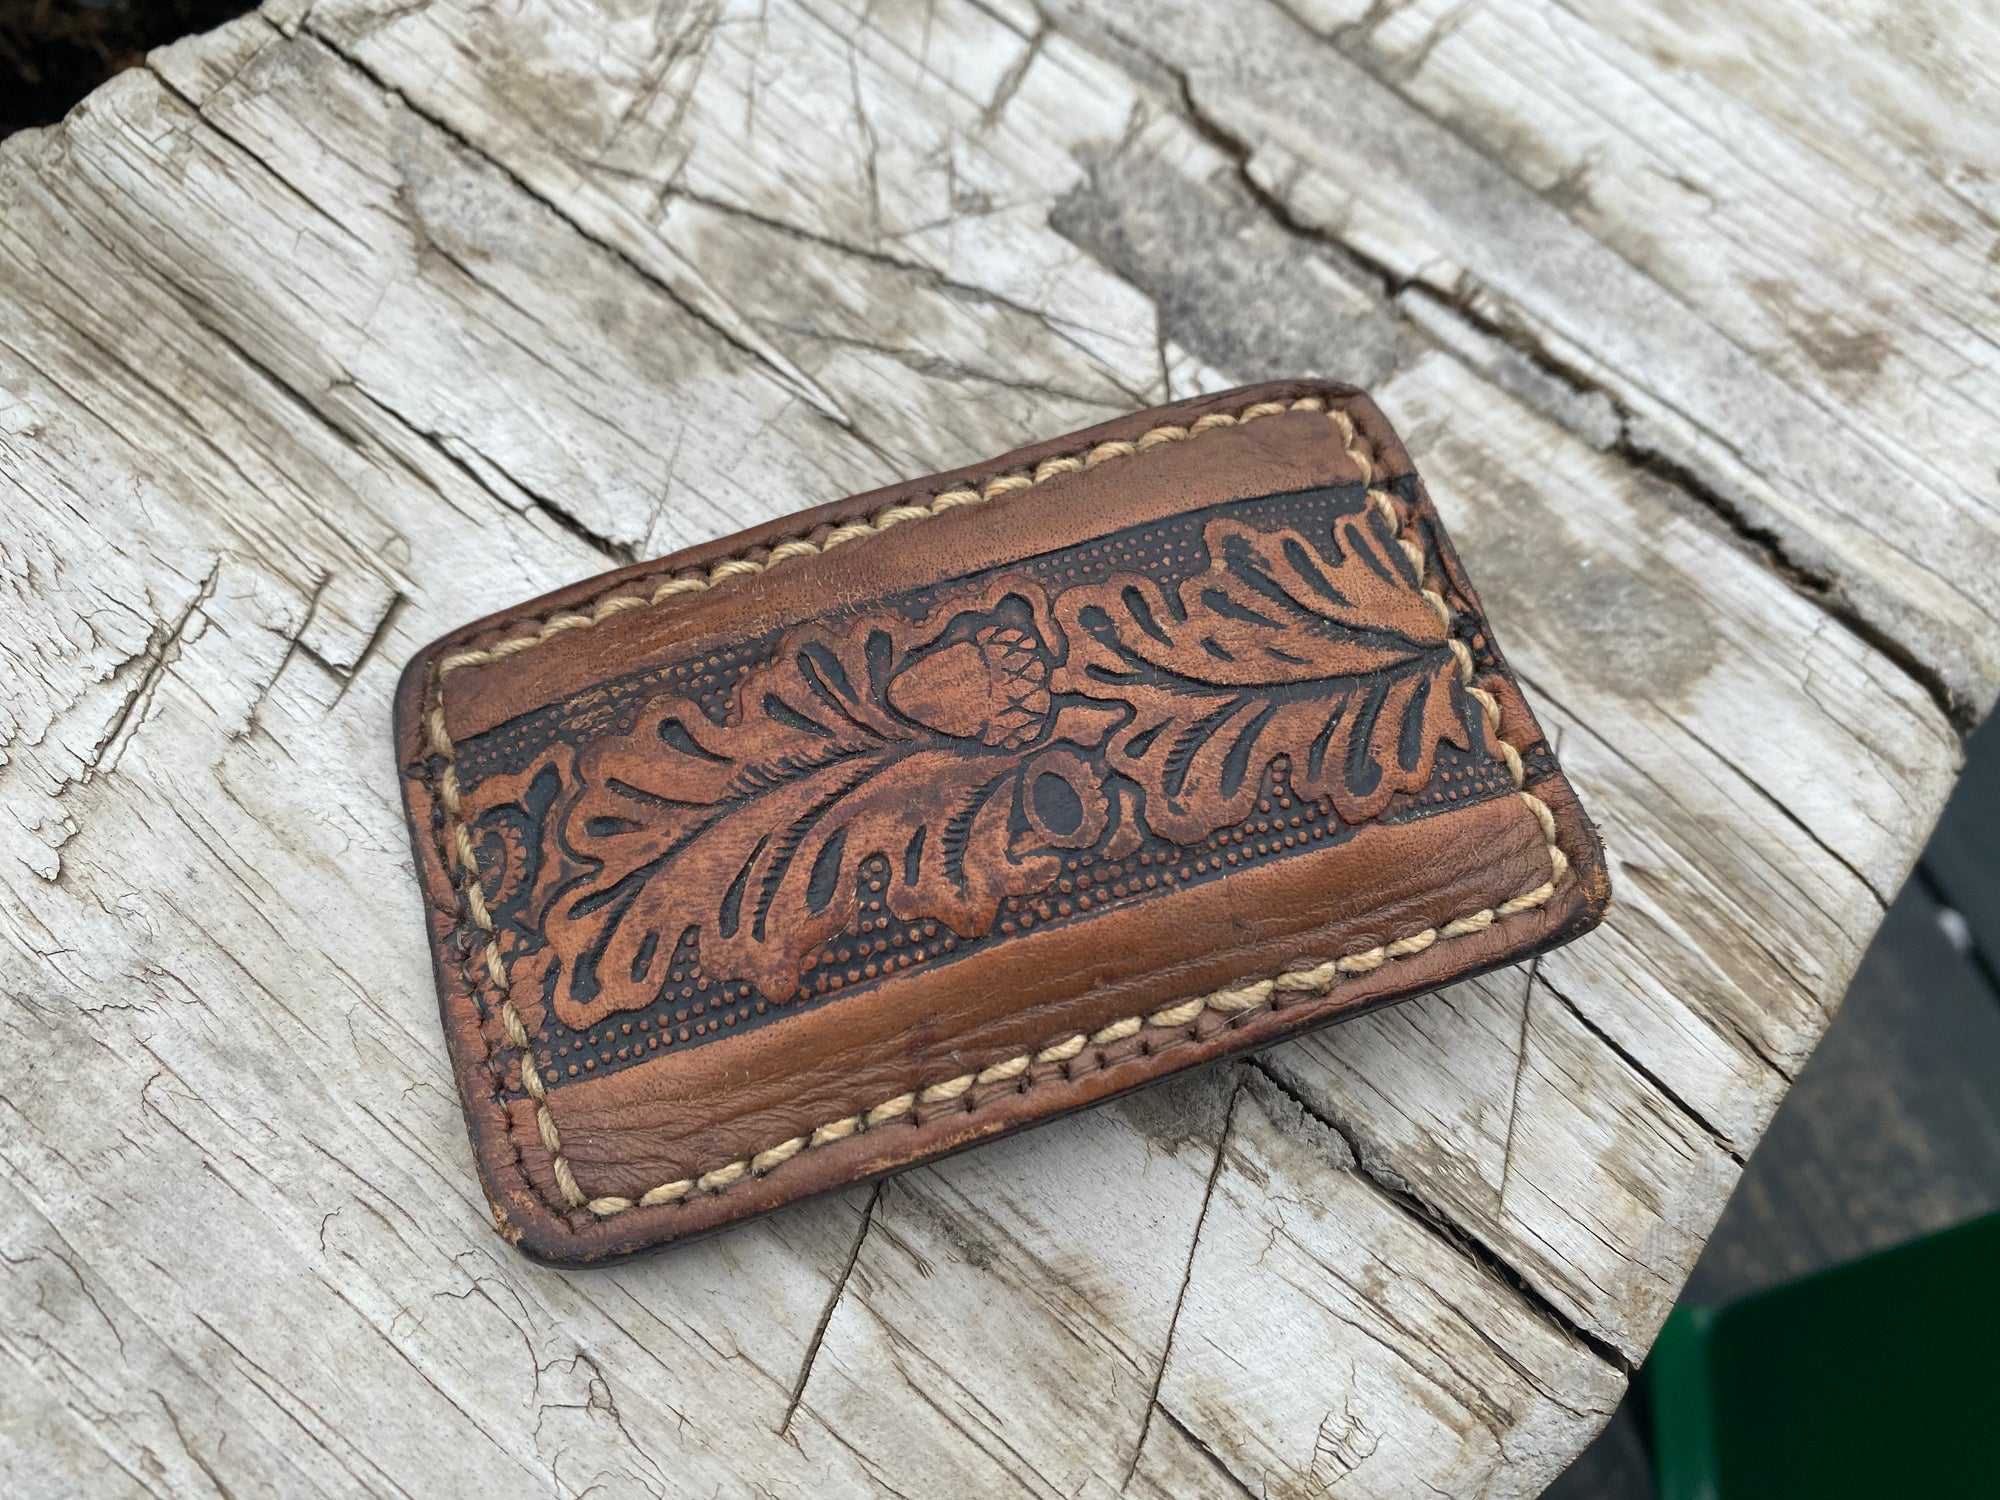 Vintage Acorn Tooled Buckle ACCESSORIES - Additional Accessories - Buckles Relic Vintage Collection Teskeys